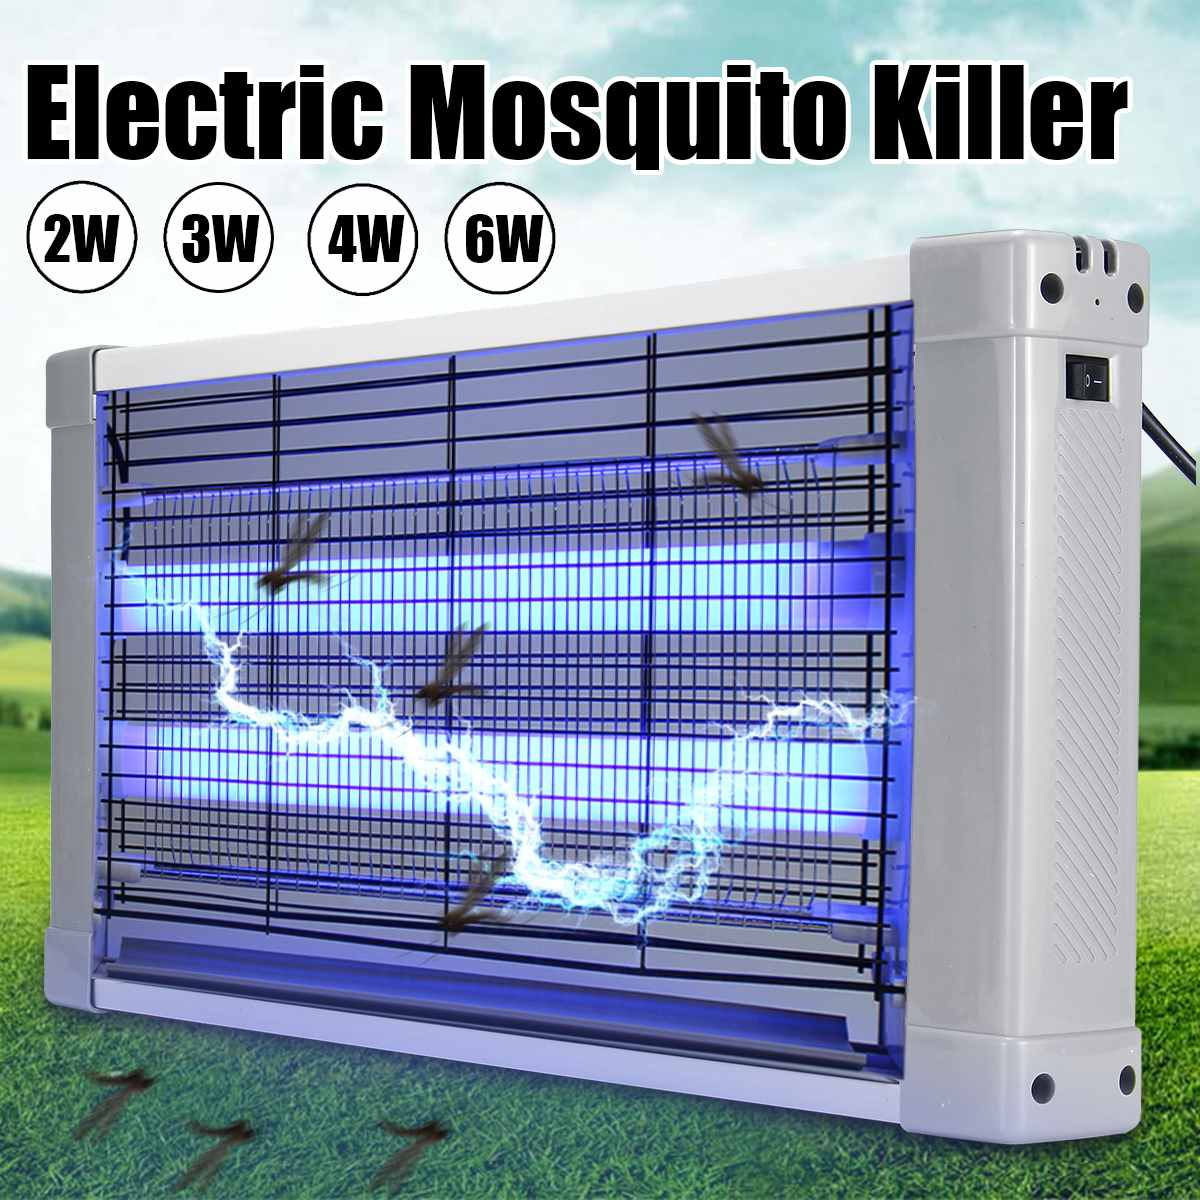 2/3/4/6W LED Electric Mosquito Fly Bug Insect Killer Zapper Trap Catcher Lamp 220V US AU Plug Night Light Garden Anti Mosquito